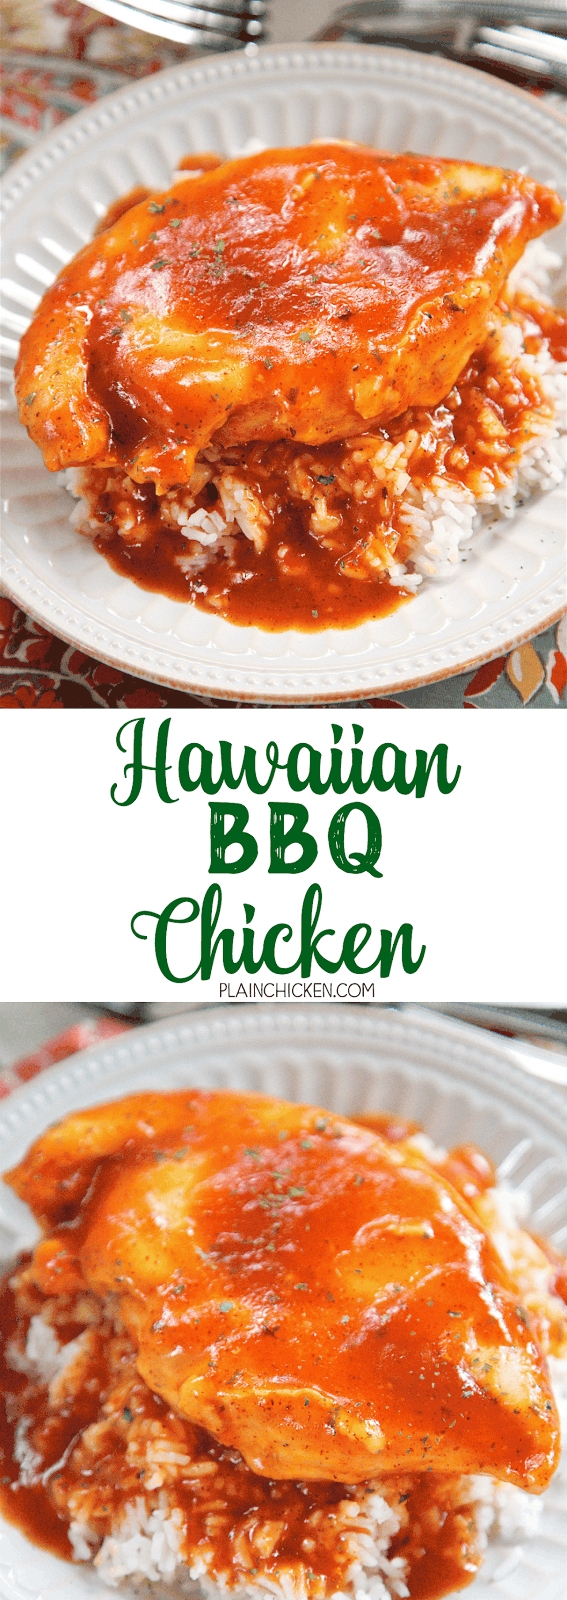 Hawaiian BBQ Chicken - chicken breasts baked in a quick pineapple bbq sauce. Pineapple sauce, ketchup, soy sauce, Worcestershire, vinegar, chili powder, and cornstarch. Bring to a boil and pour over the chicken then bake. No prep work! Super easy and quick recipe! Serve over rice or noodles - make sure to pour the extra bbq sauce over the chicken - it is SOOOO good! We could not stop eating this!